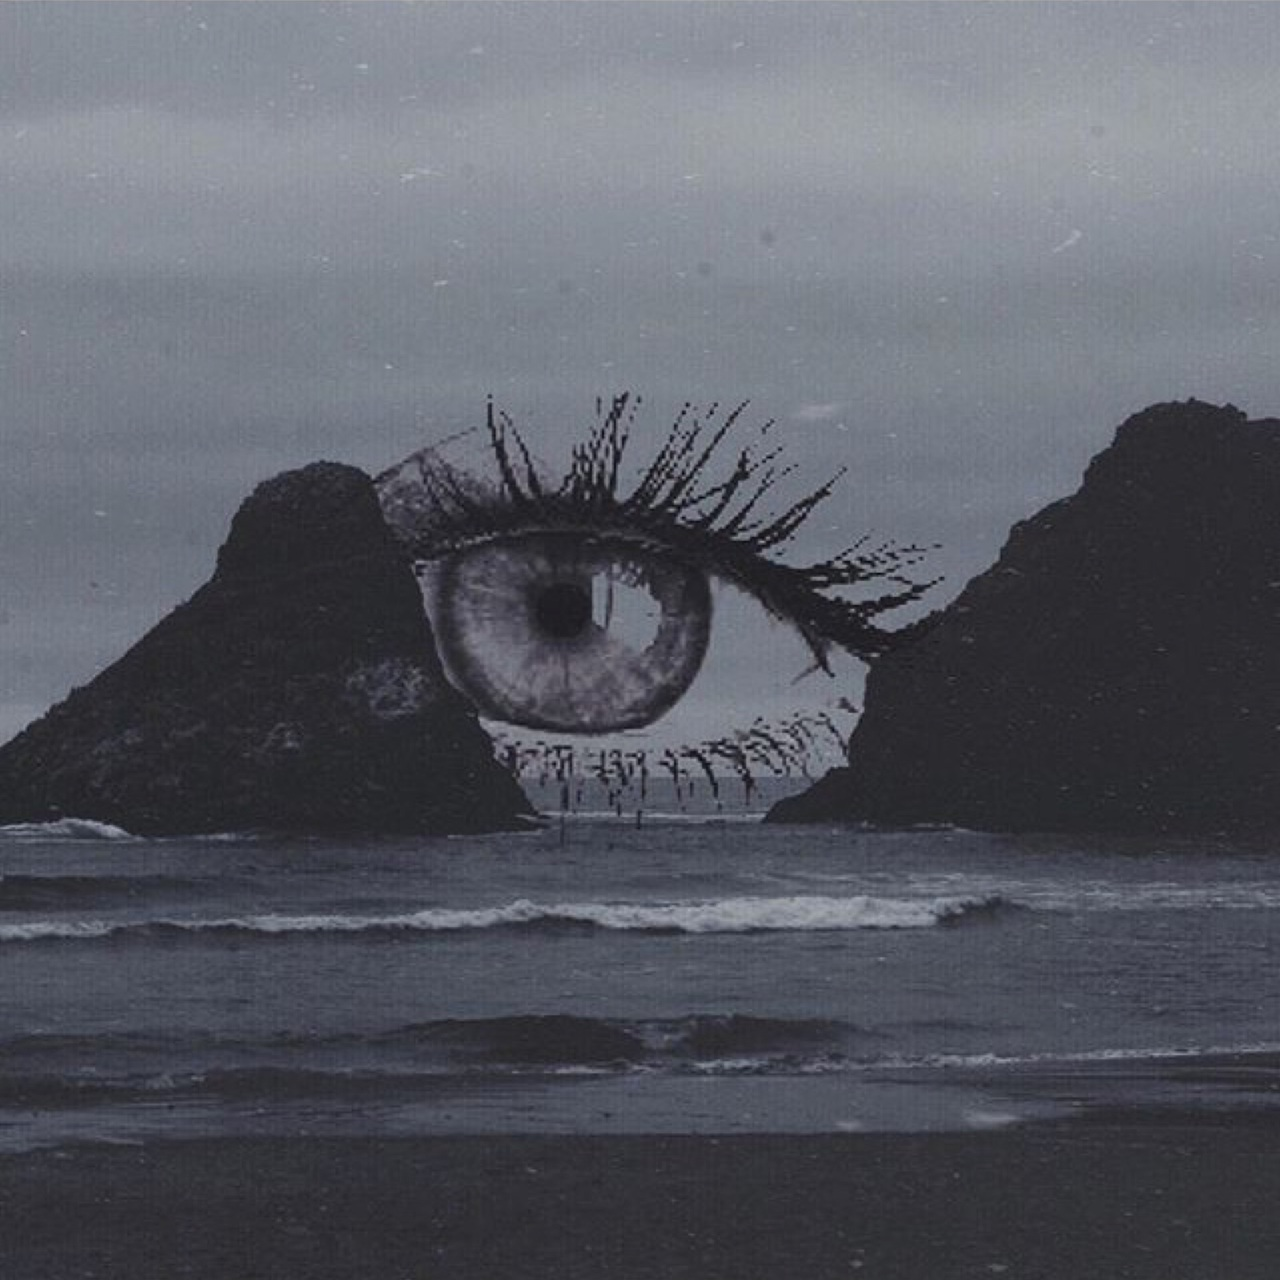 aesthetic, cliffs, eye, good vibes, grunge, makeup, nature, pale, photography, sea, stay positive, style, tumblr, vintage, waves